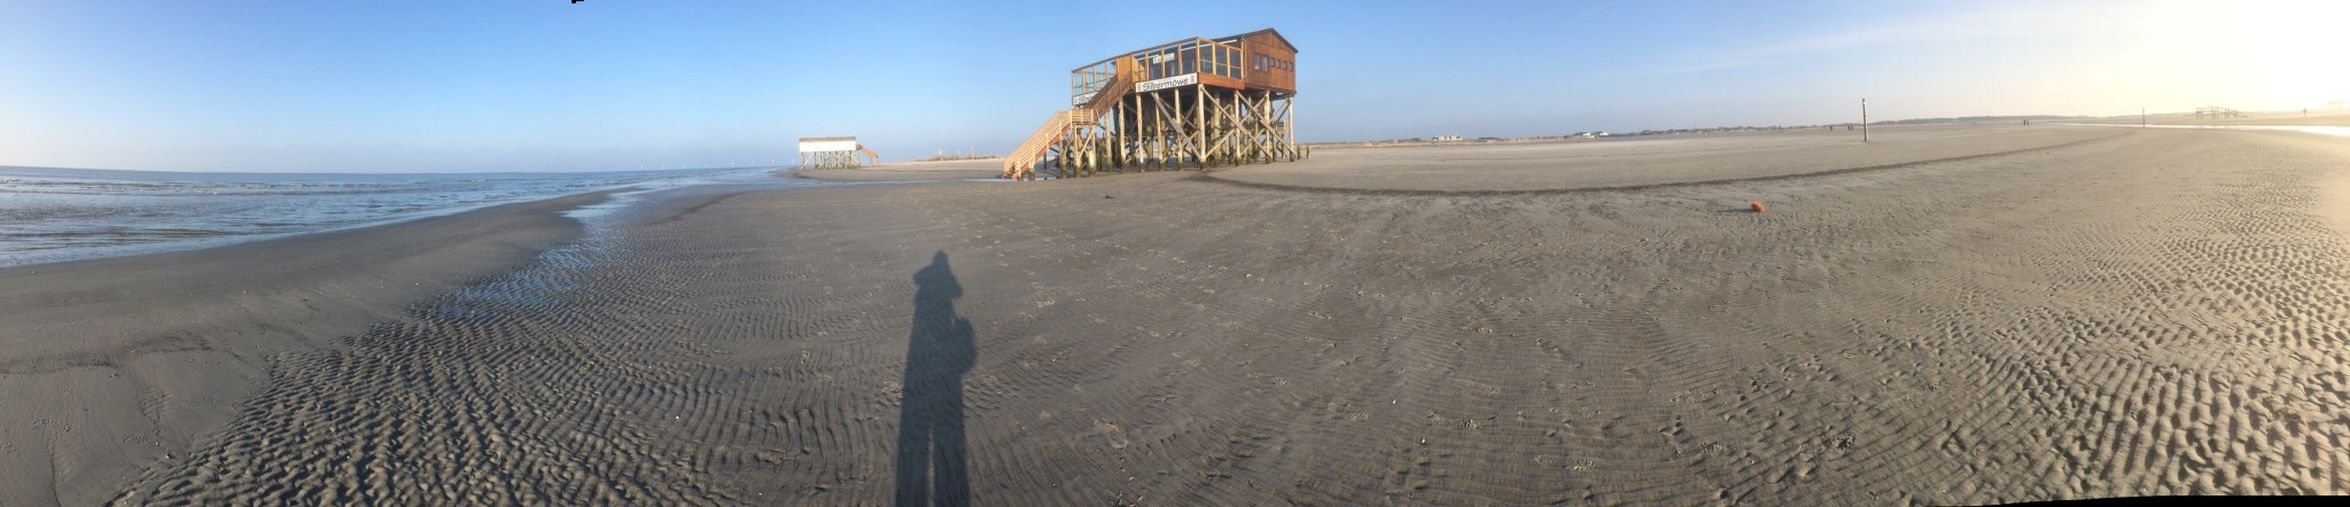 St. Peter Ording Beach Nordsee Northsea Strand Relaxing Having Fun Panorama Panoramic Shadow